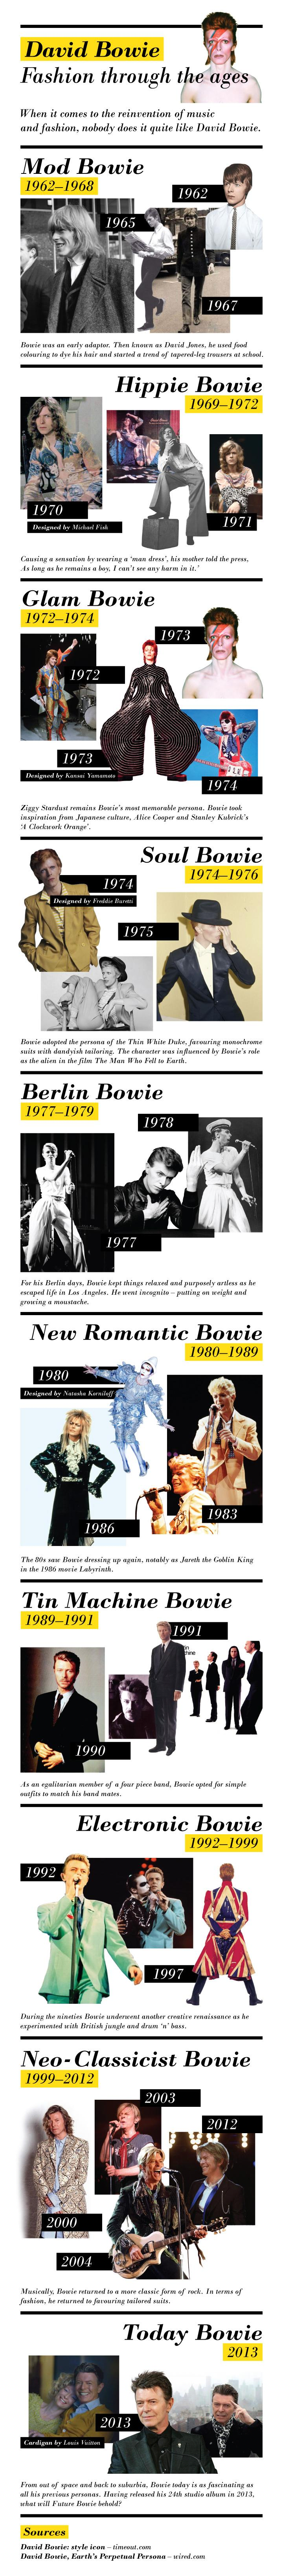 david-bowie-fashion-through-the-ages-2